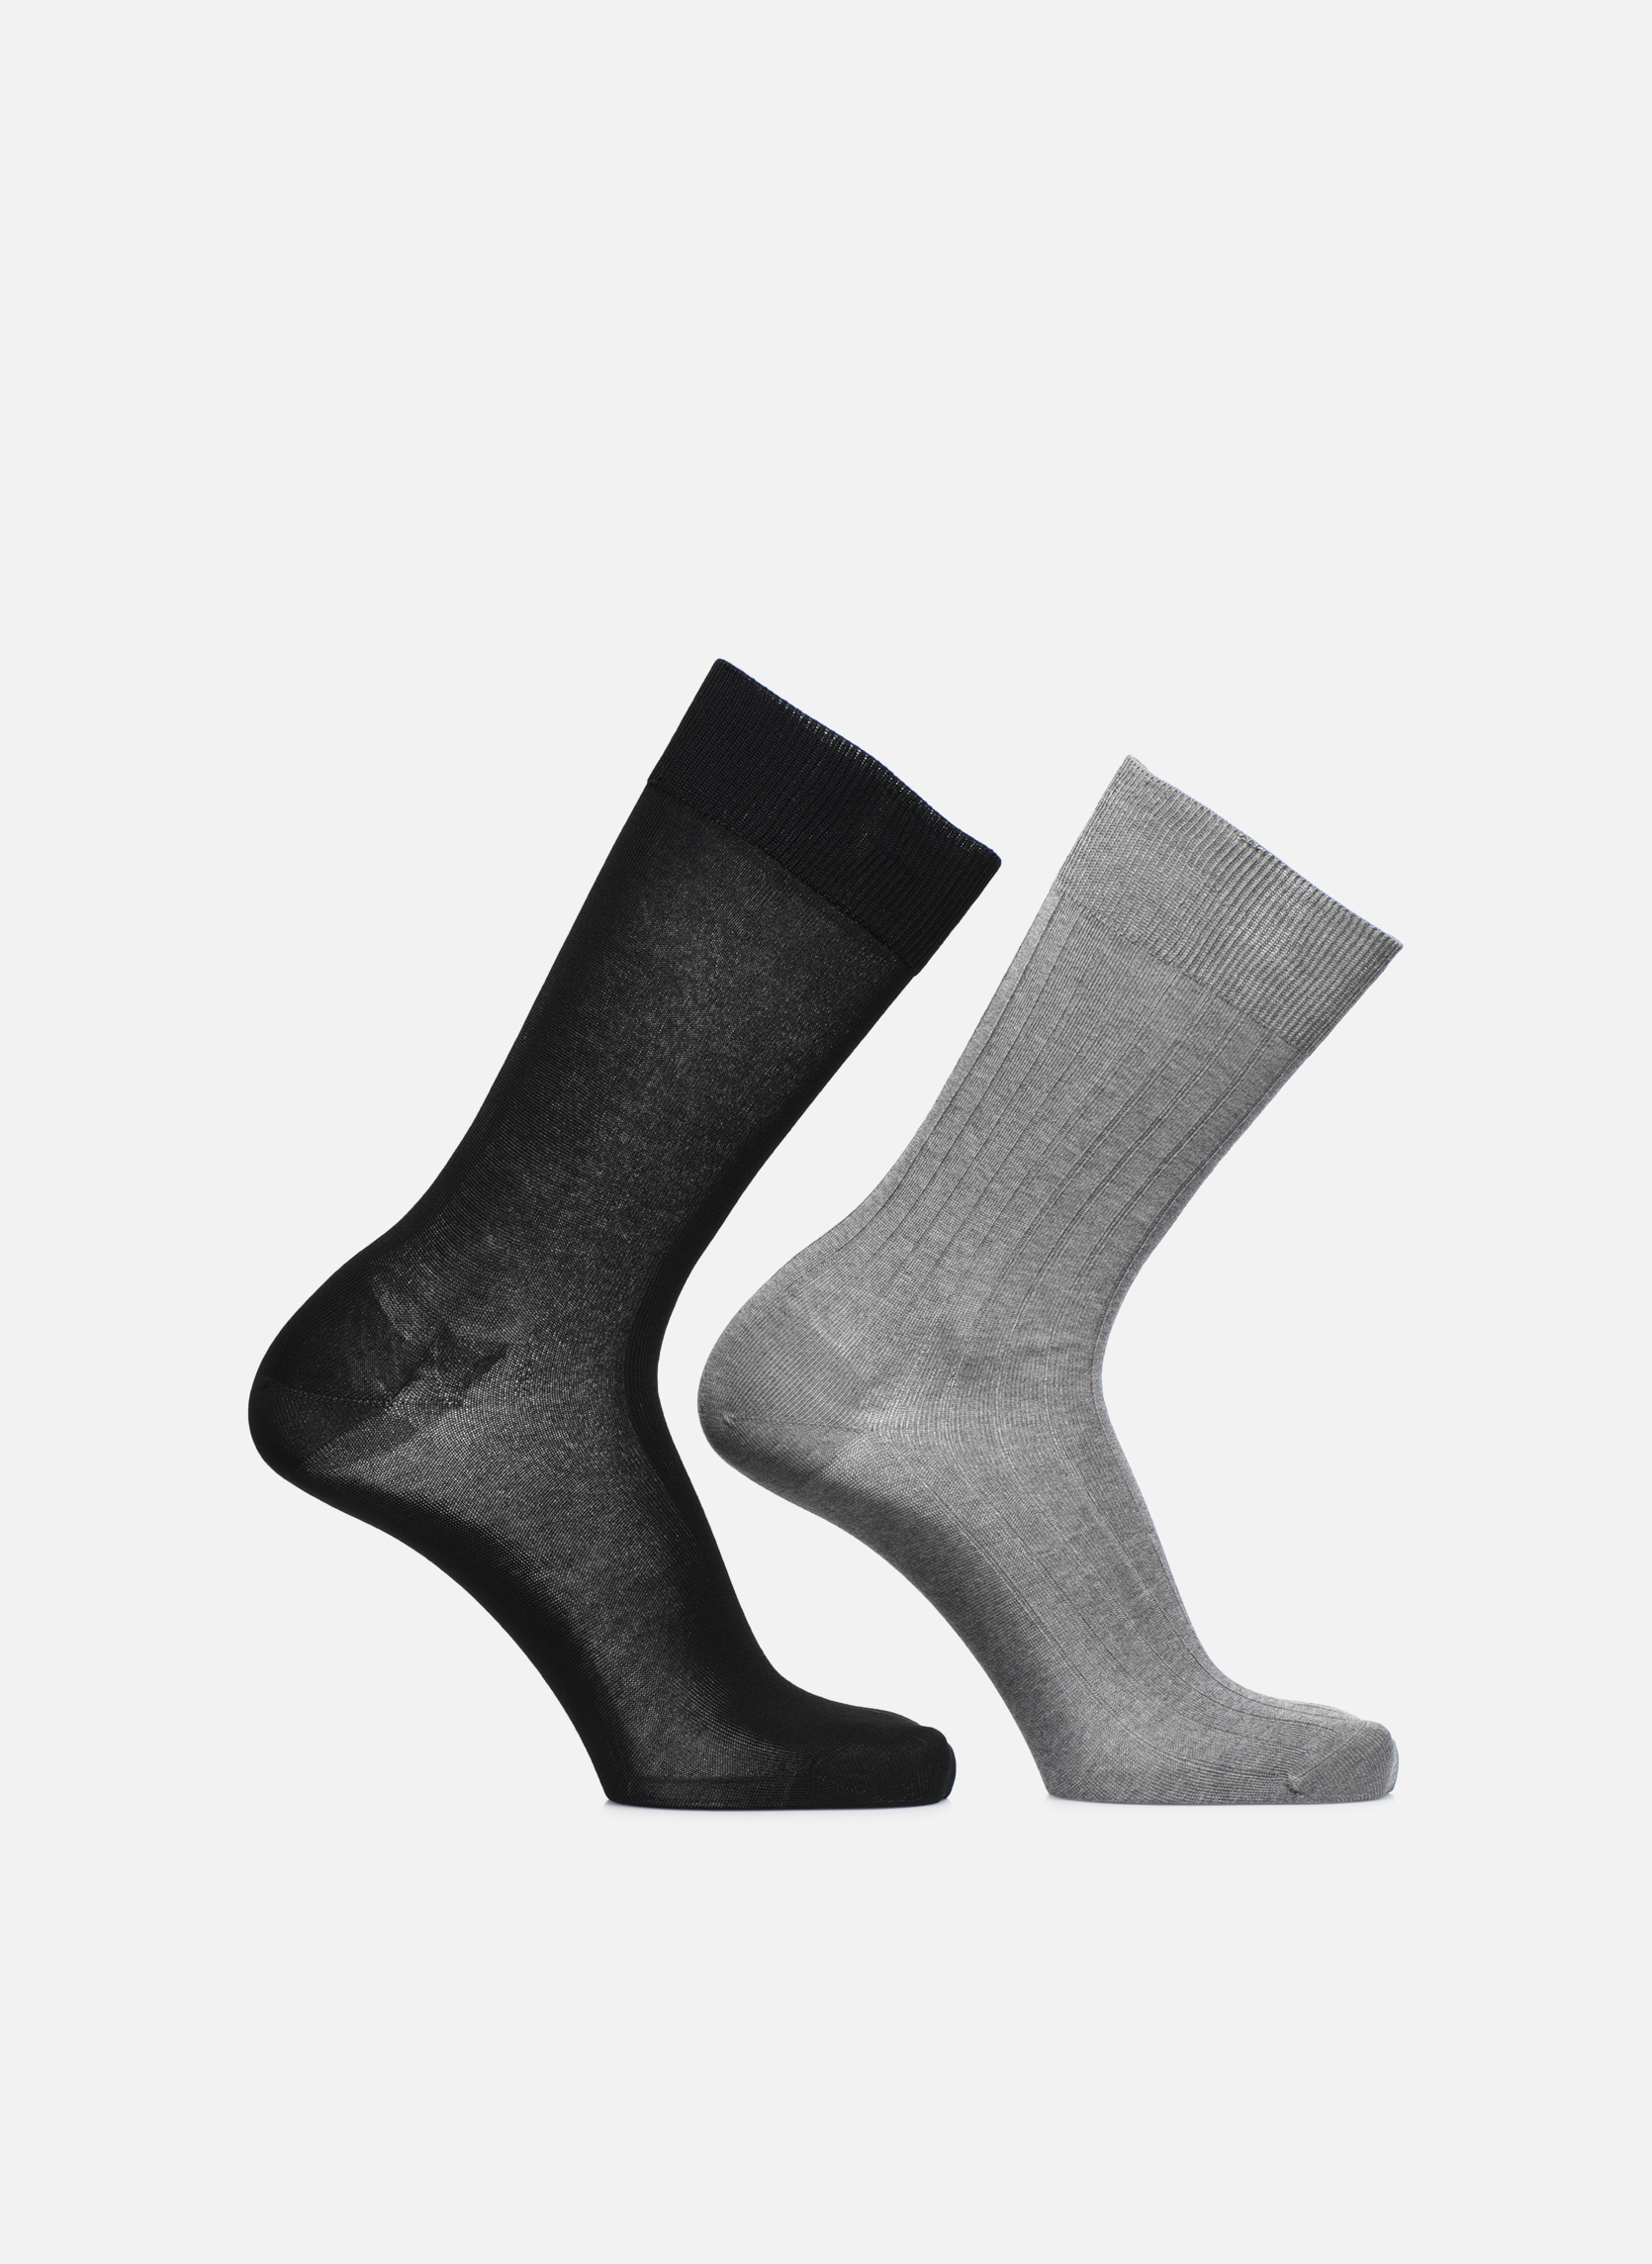 Socks fils d'écosse Pack of 2 Gris